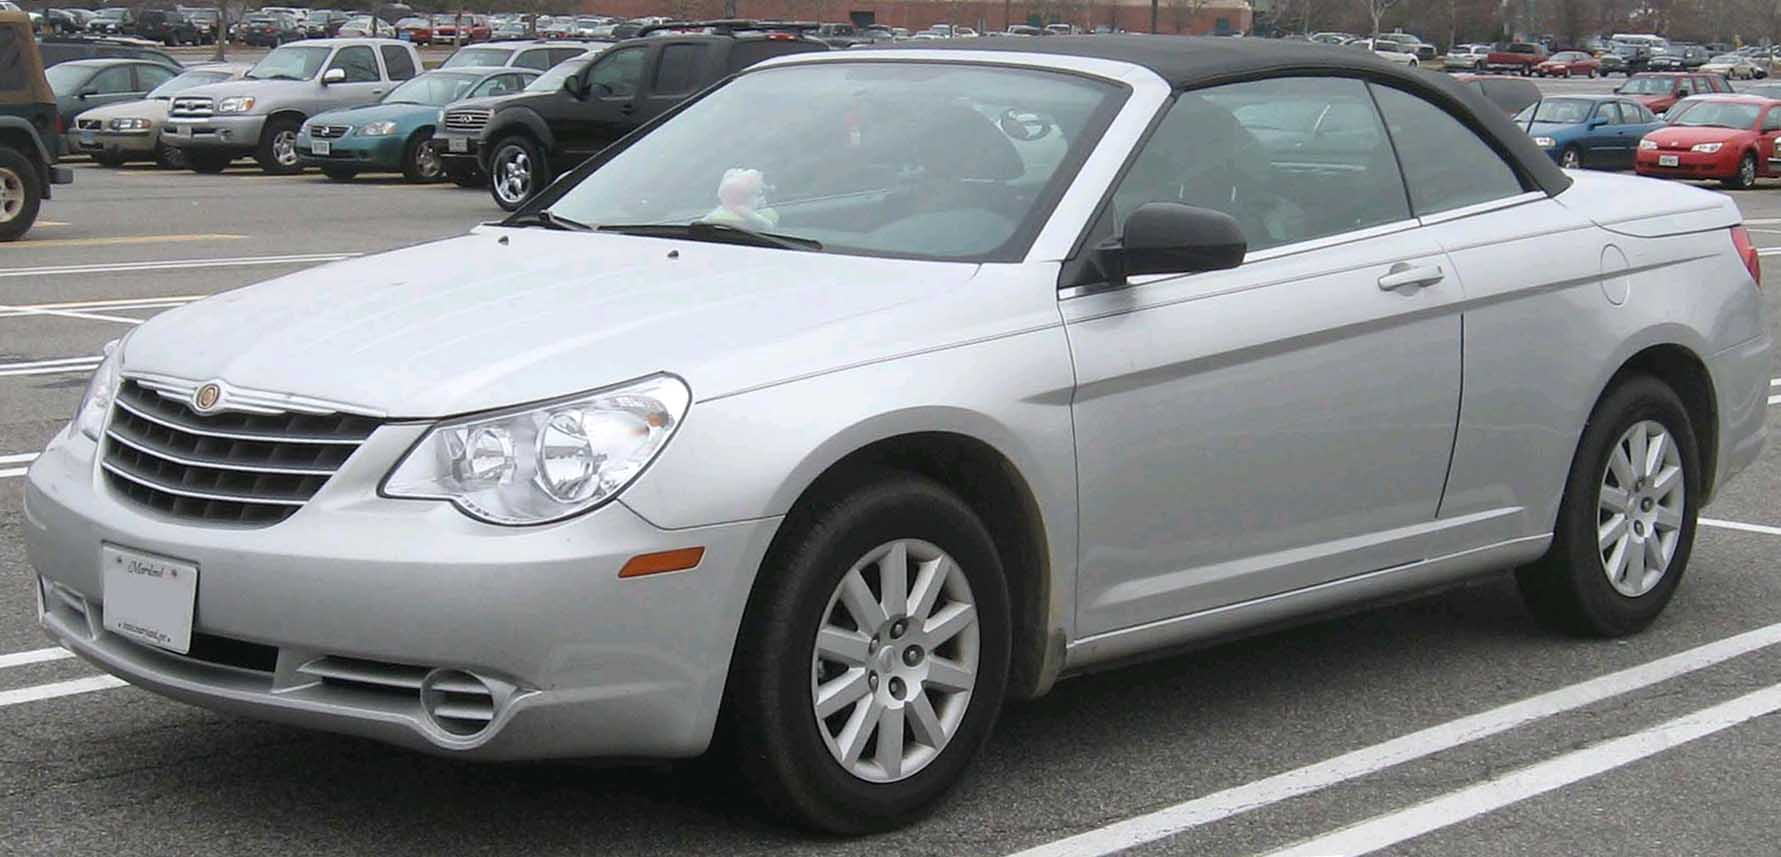 chrysler sebring pictures #4